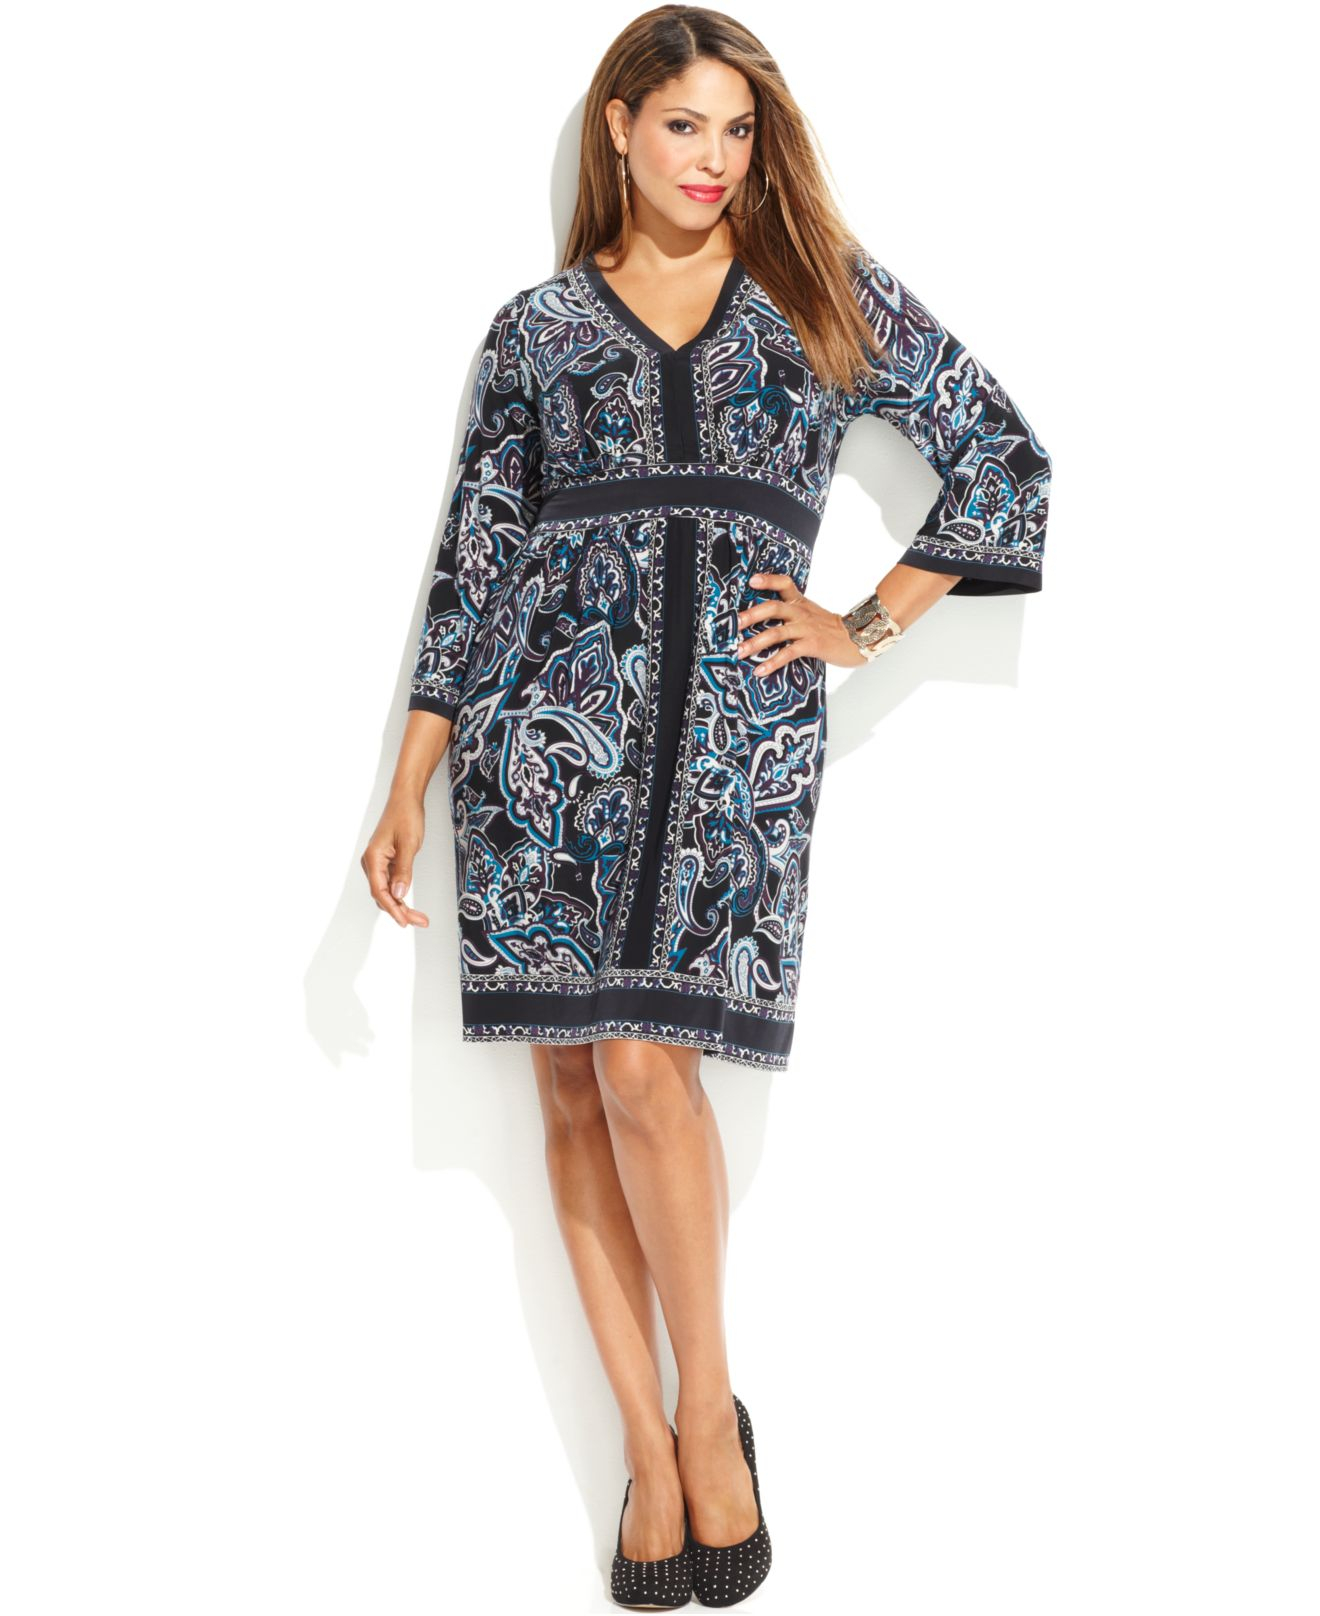 Inc international concepts Plus Size Printed Empire-Waist Dress | Lyst